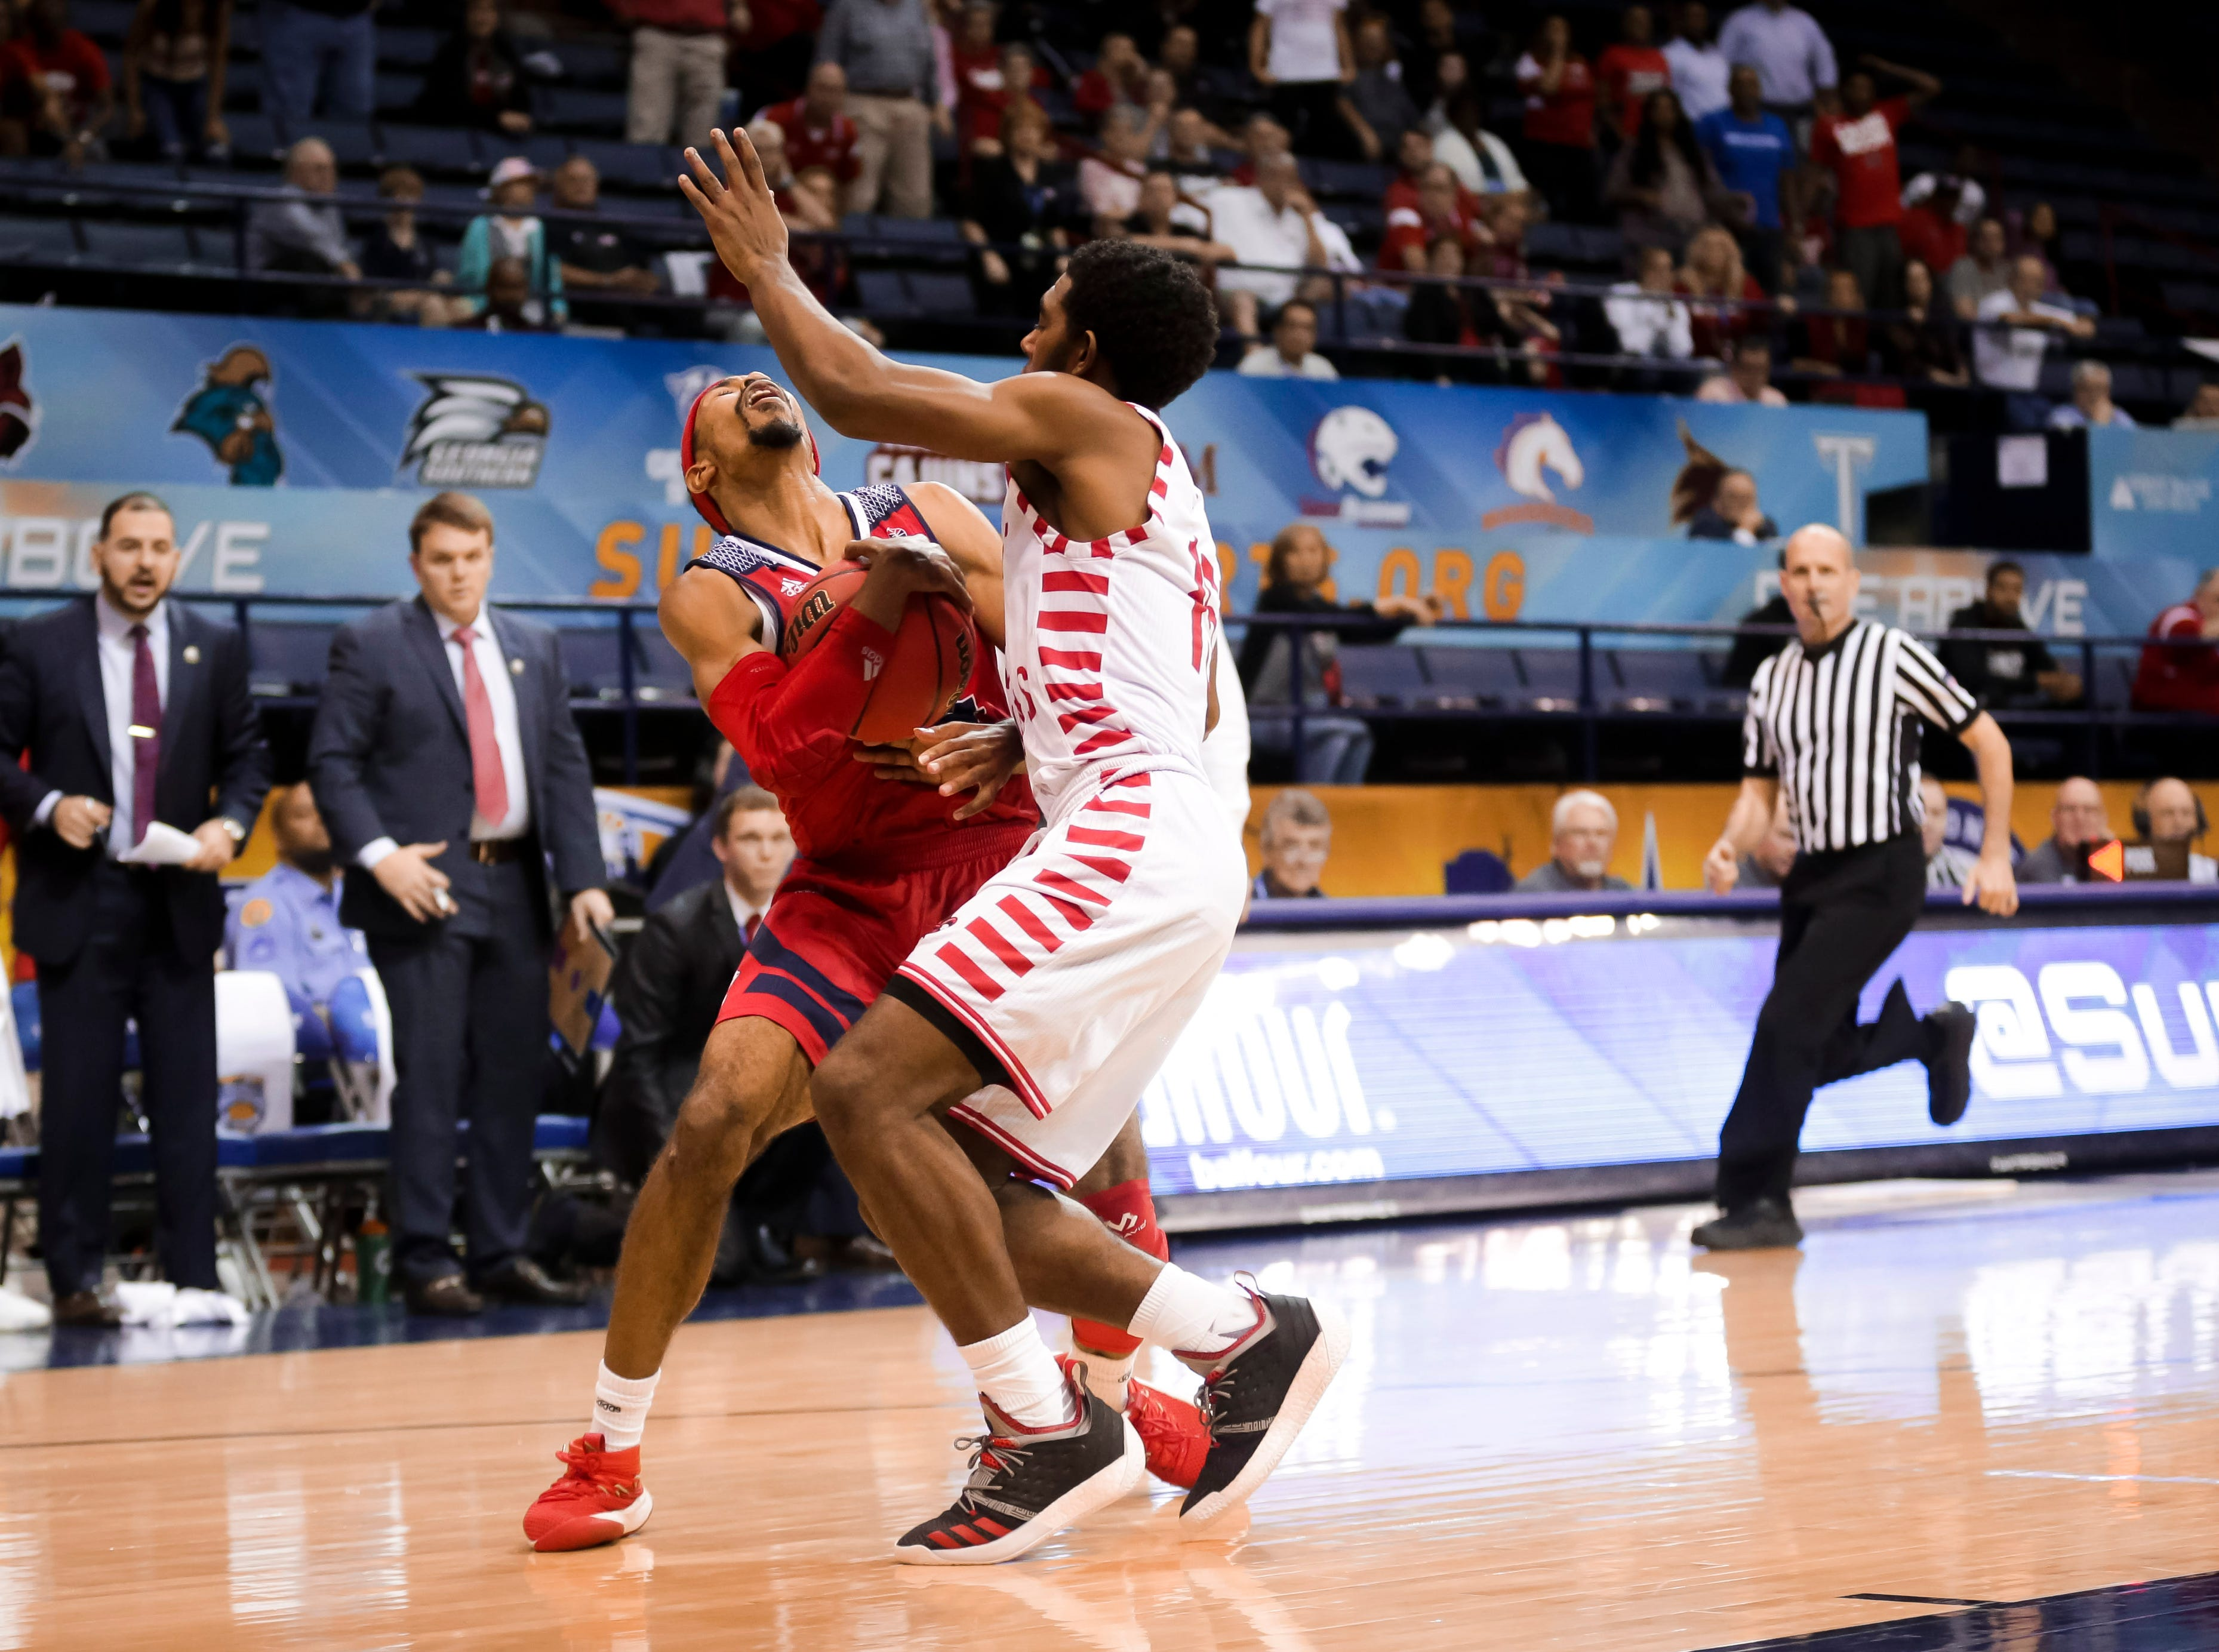 The Ragin' Cajuns fell to South Alabama, 70-69, on Thursday at the Sun Belt Men's Basketball Championship in New Orleans.